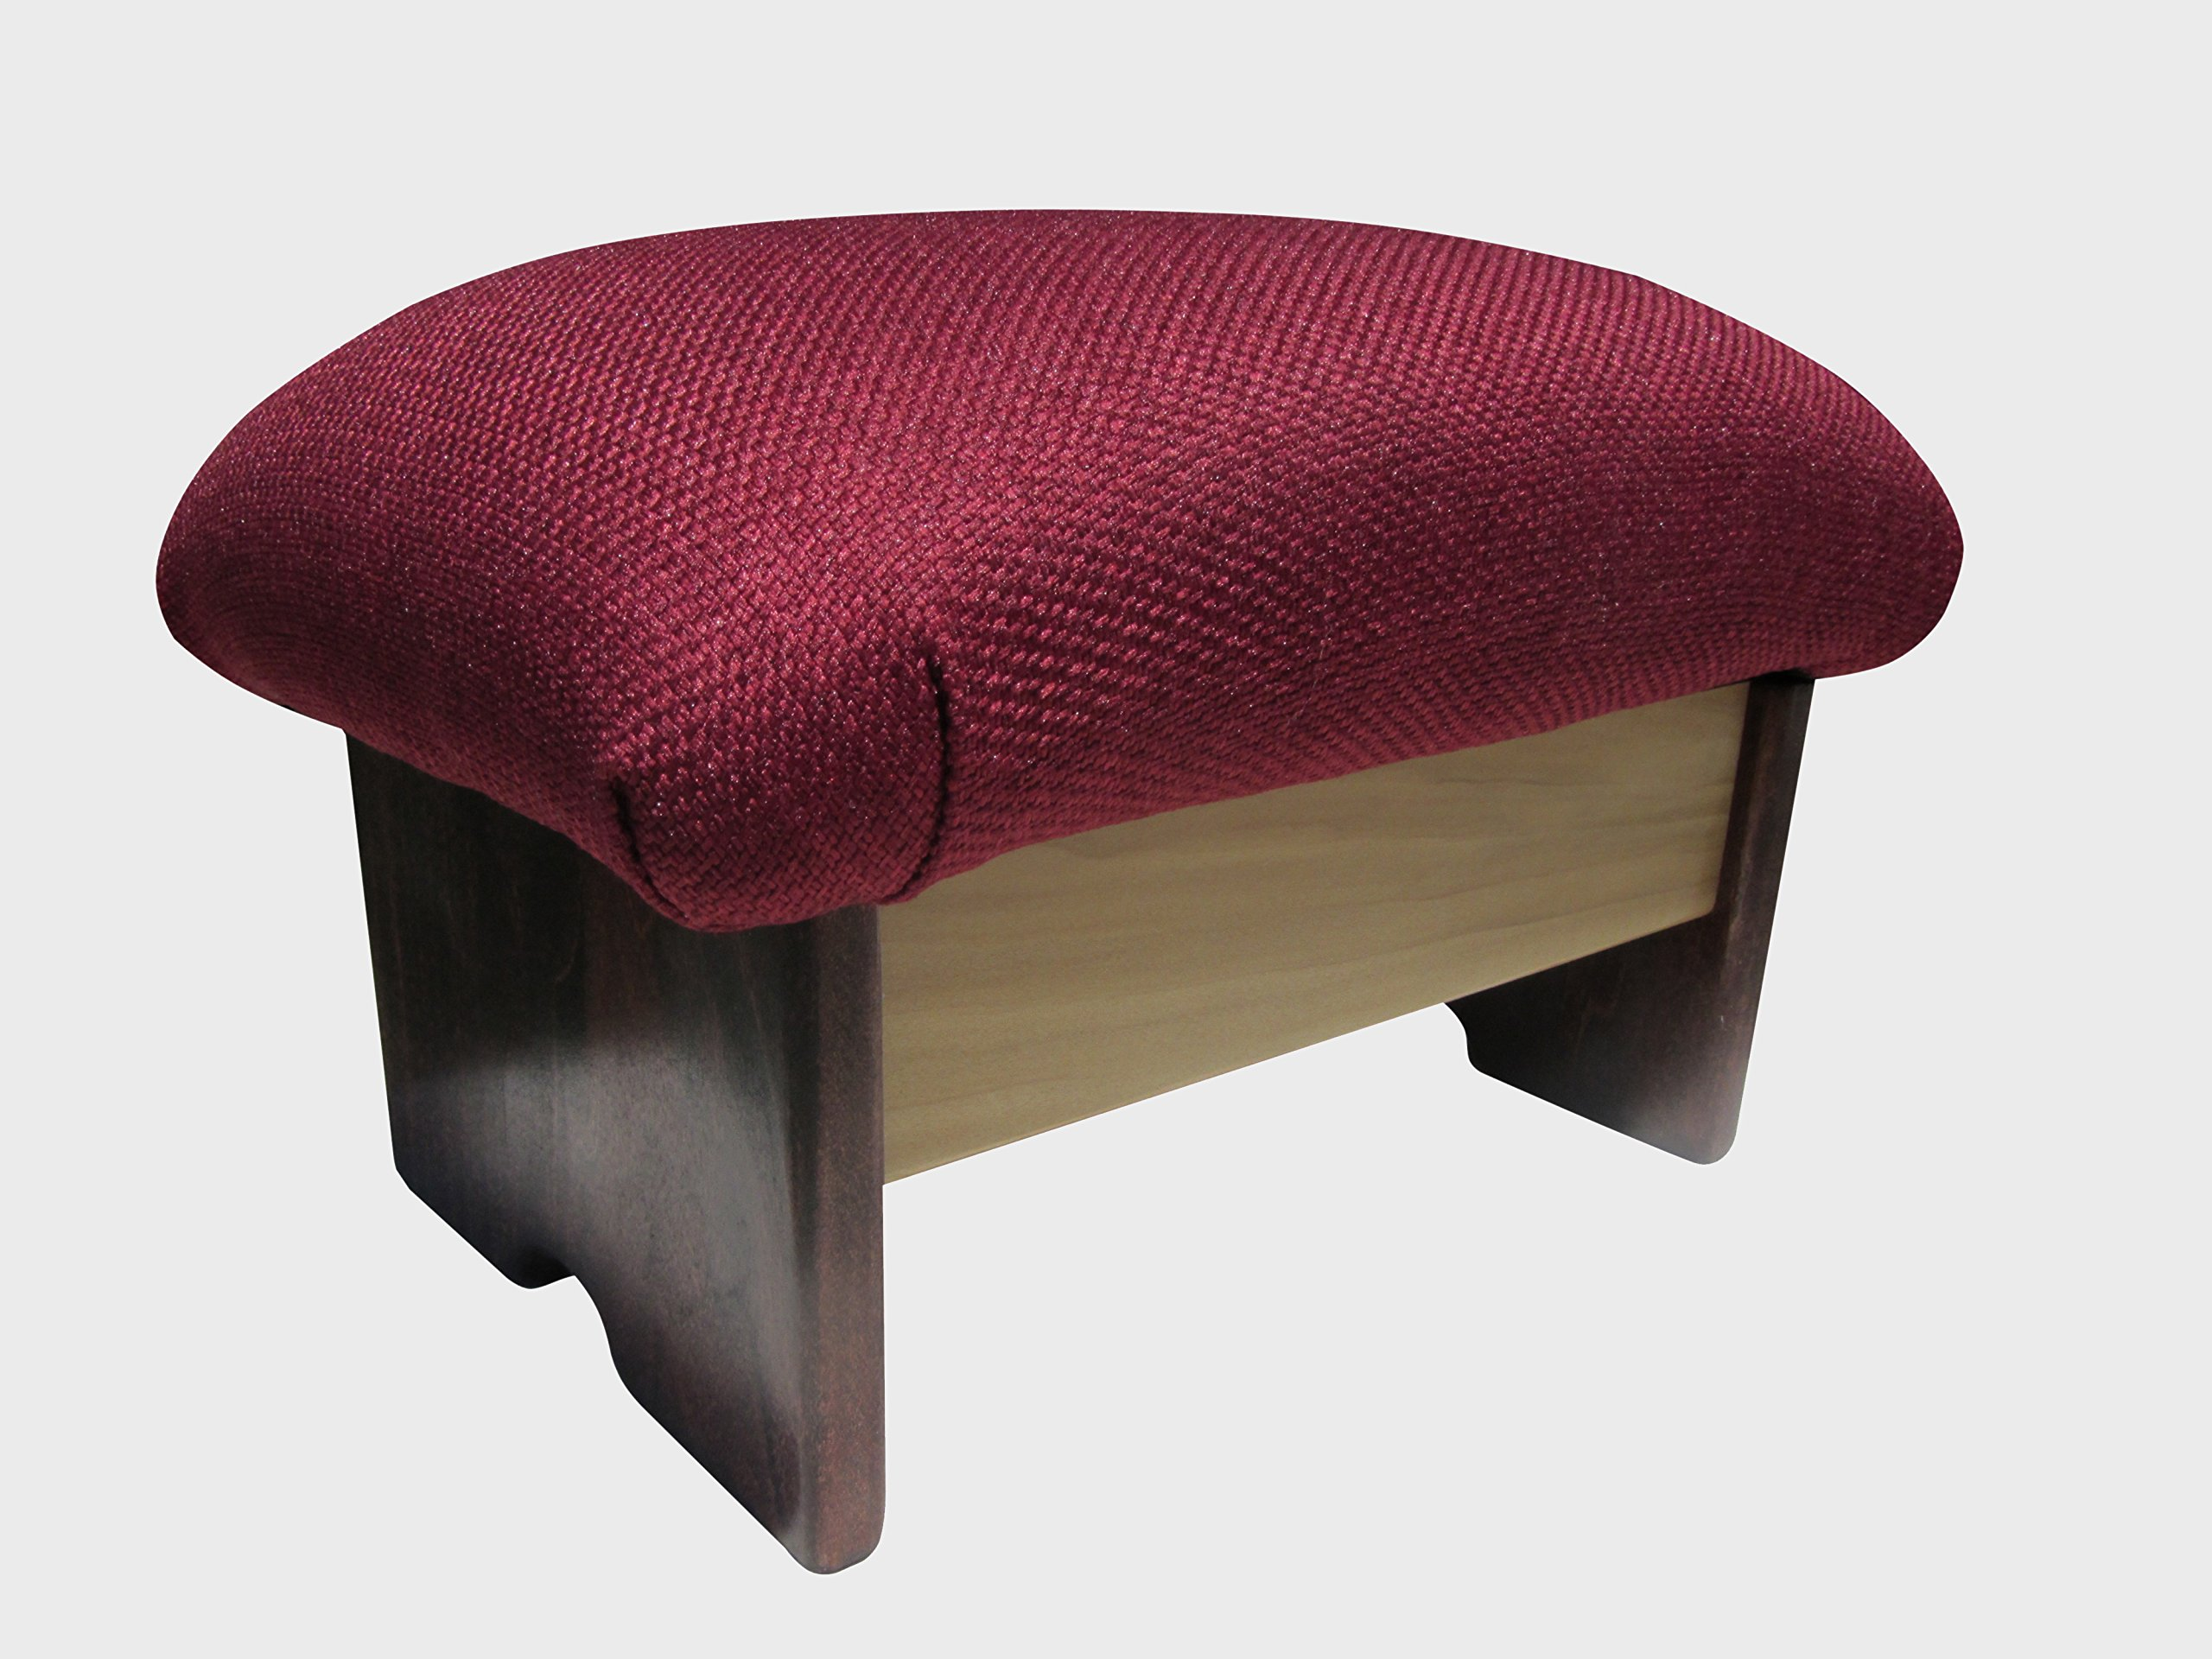 Padded Foot Stool Solid Fabrics 9'' Tall, Chic Stain (Made in the USA) (Burgundy) by KR Ideas